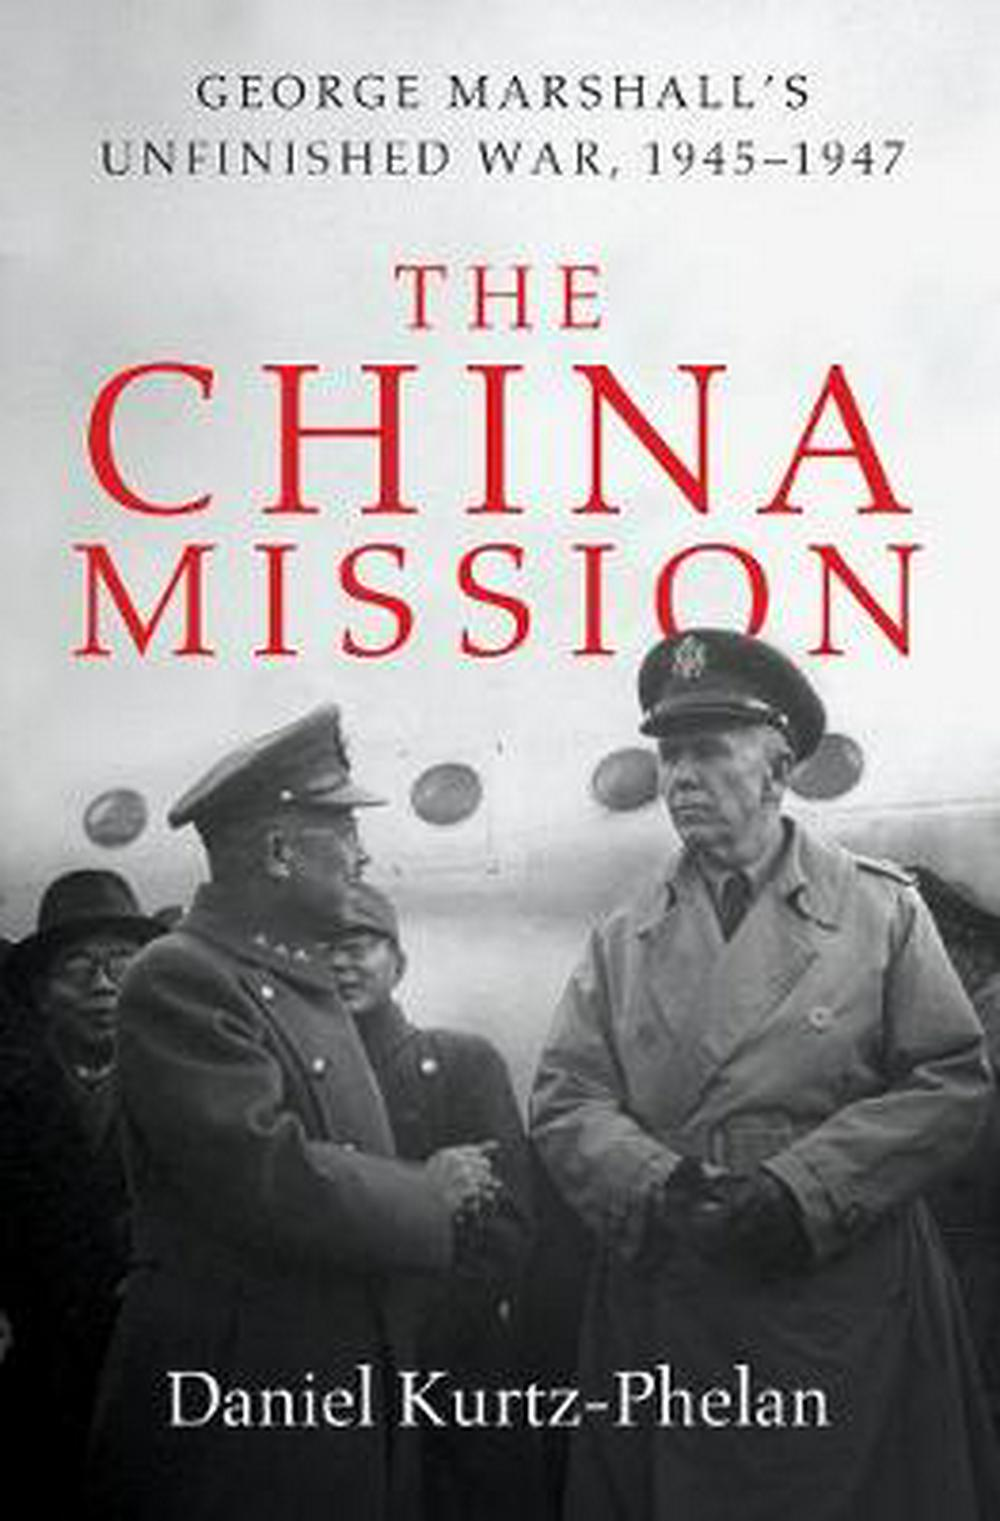 The China Mission: George C. Marshall's Unfinished War, 1945-1947